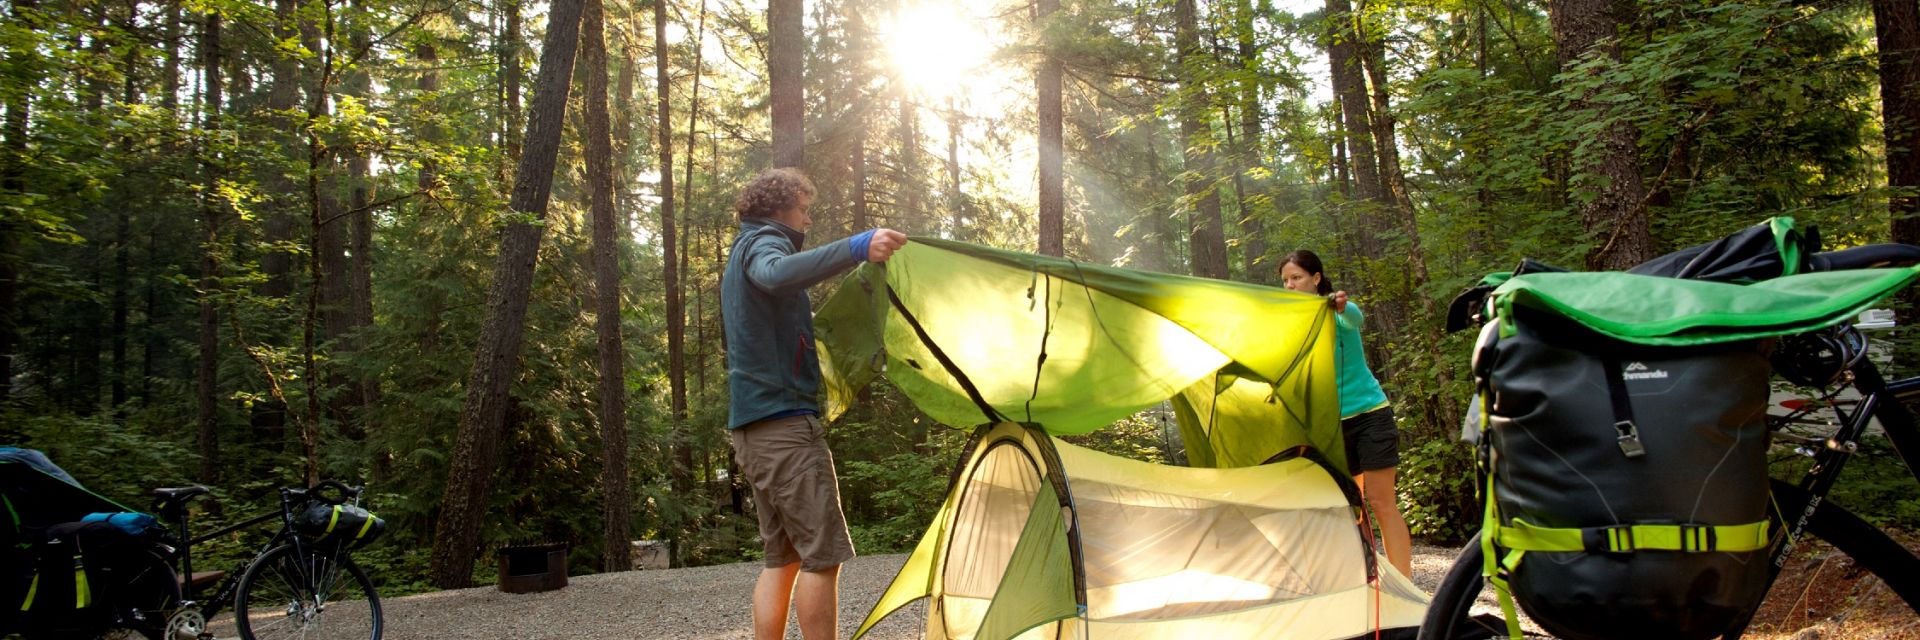 Couple setting up their tent at a campsite in Nairn Falls Provincial Park.